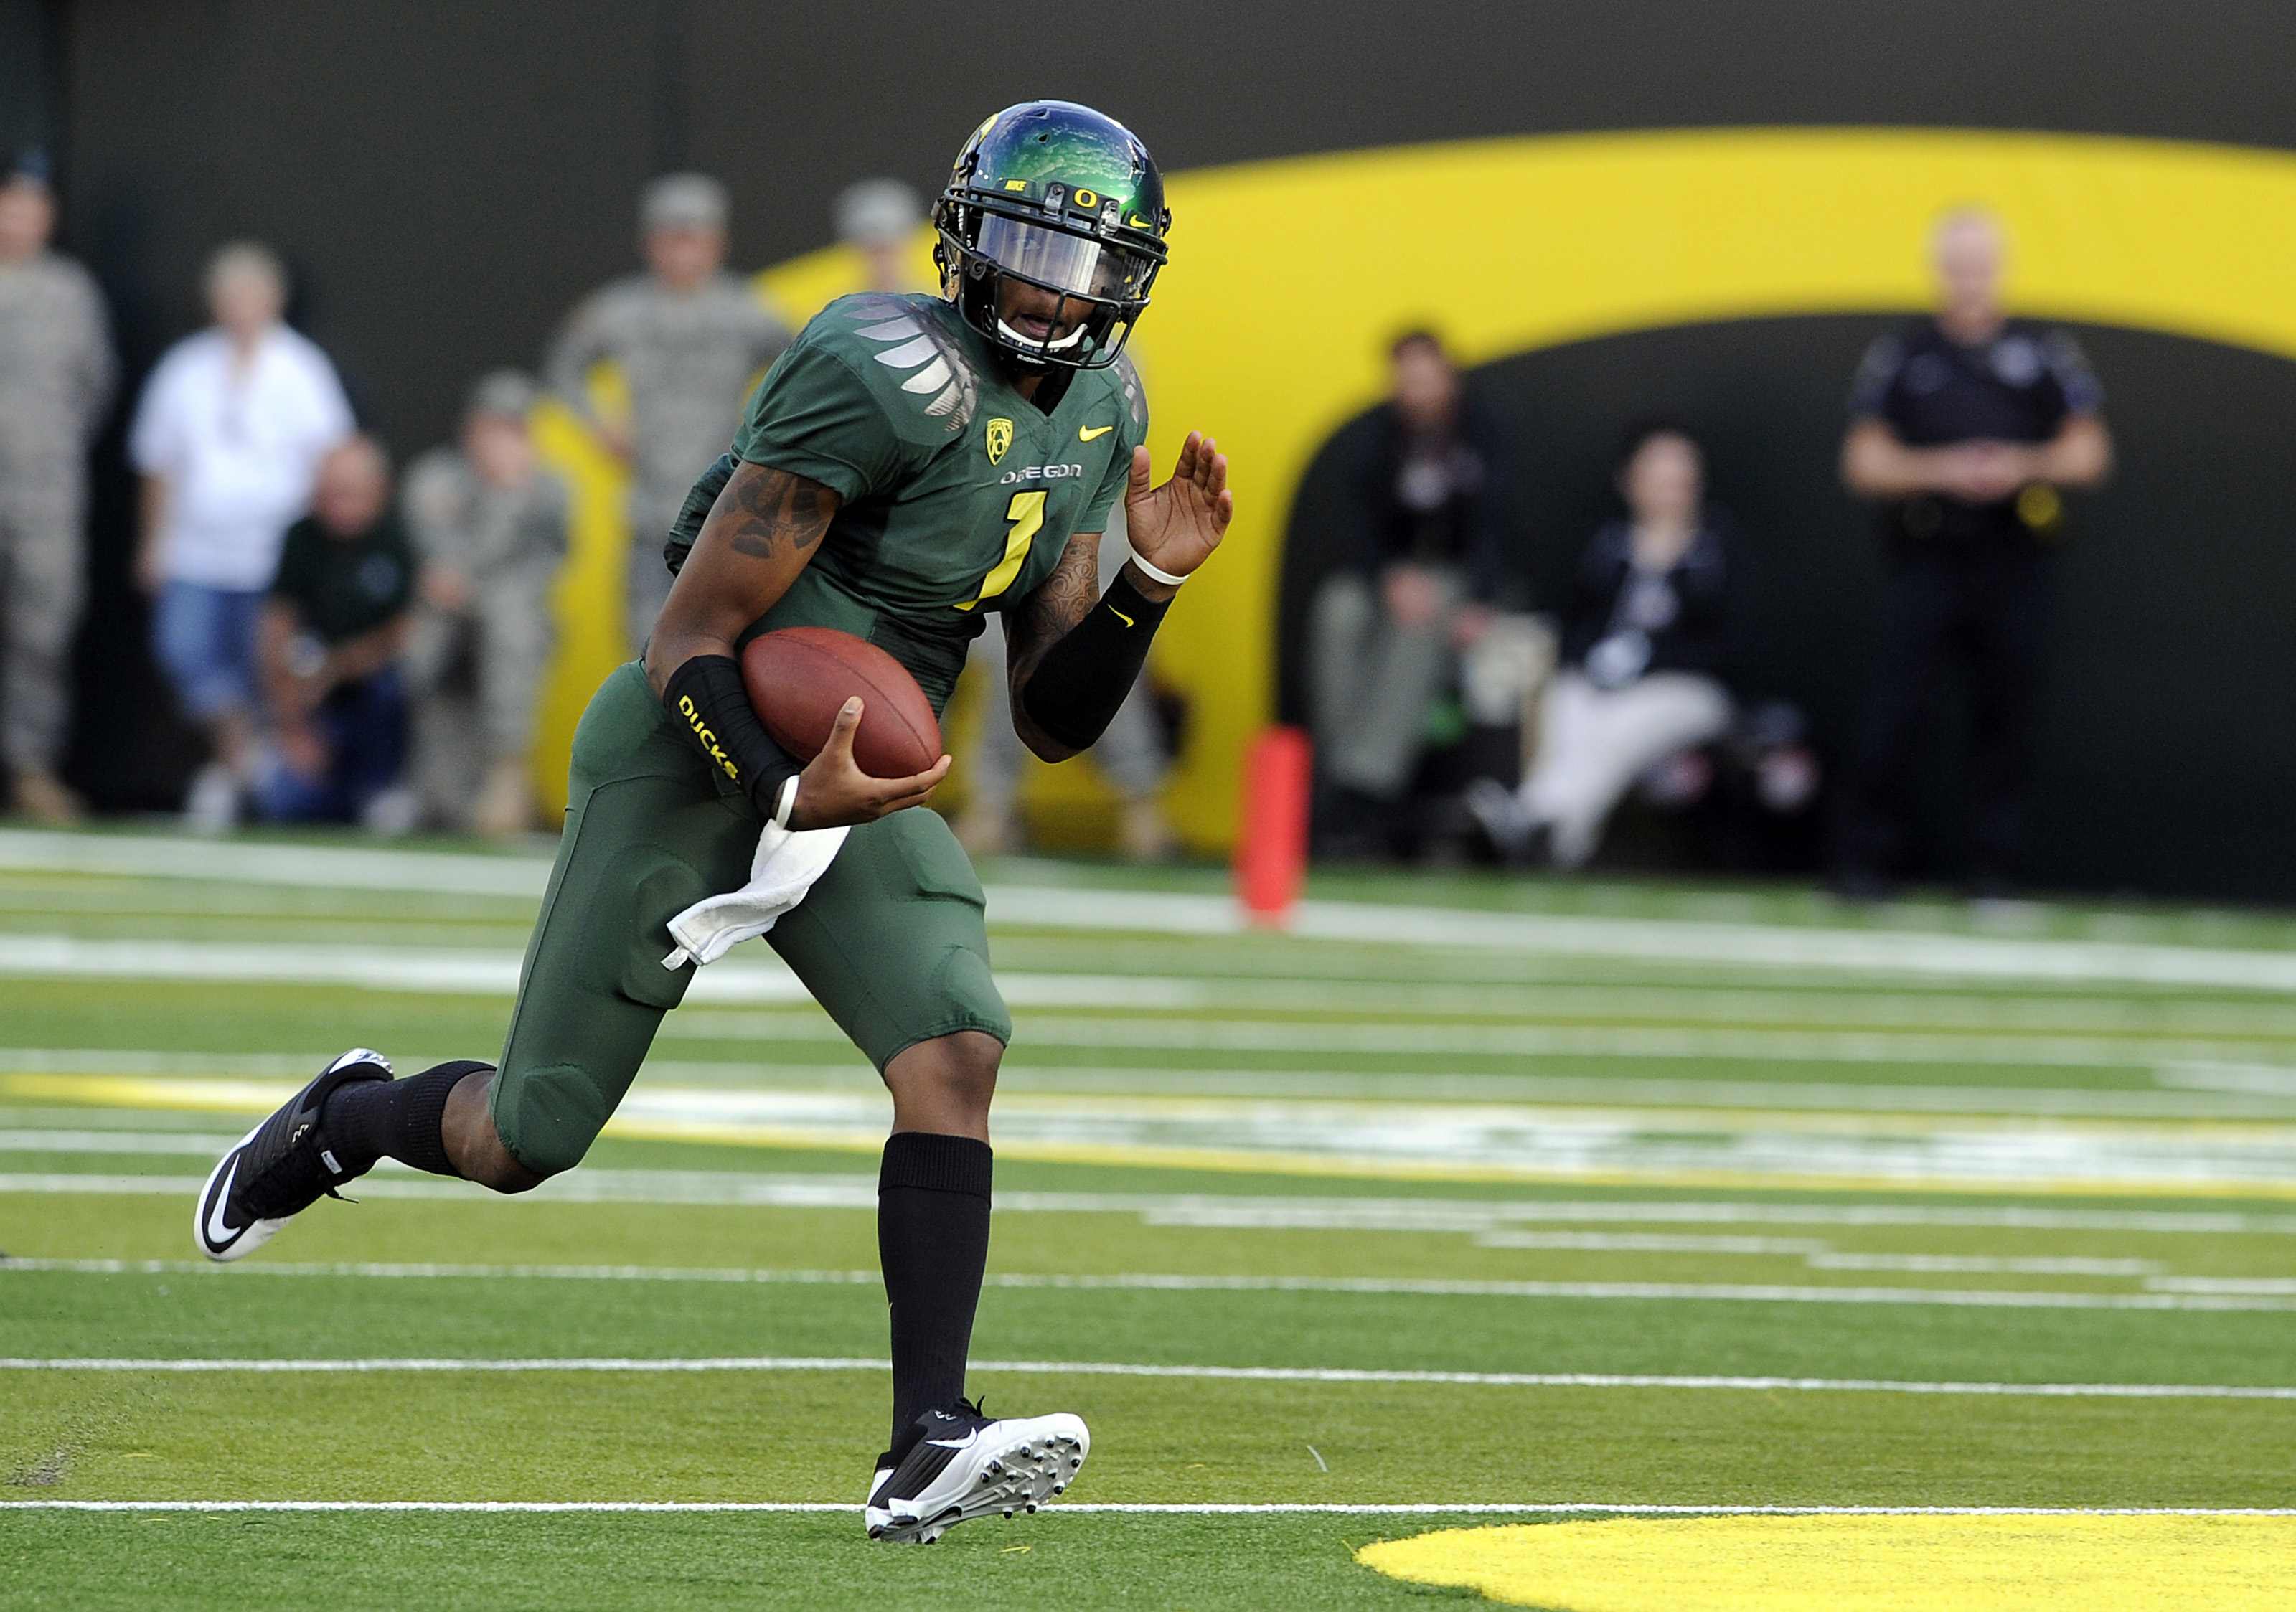 EUGENE, OR - OCTOBER 2: Quarterback Darron Thomas #1 of the Oregon Ducks runs with the ball in the first quarter of the game against the Stanford Cardinal at Autzen Stadium on October 2, 2010 in Eugene, Oregon. (Photo by Steve Dykes/Getty Images)